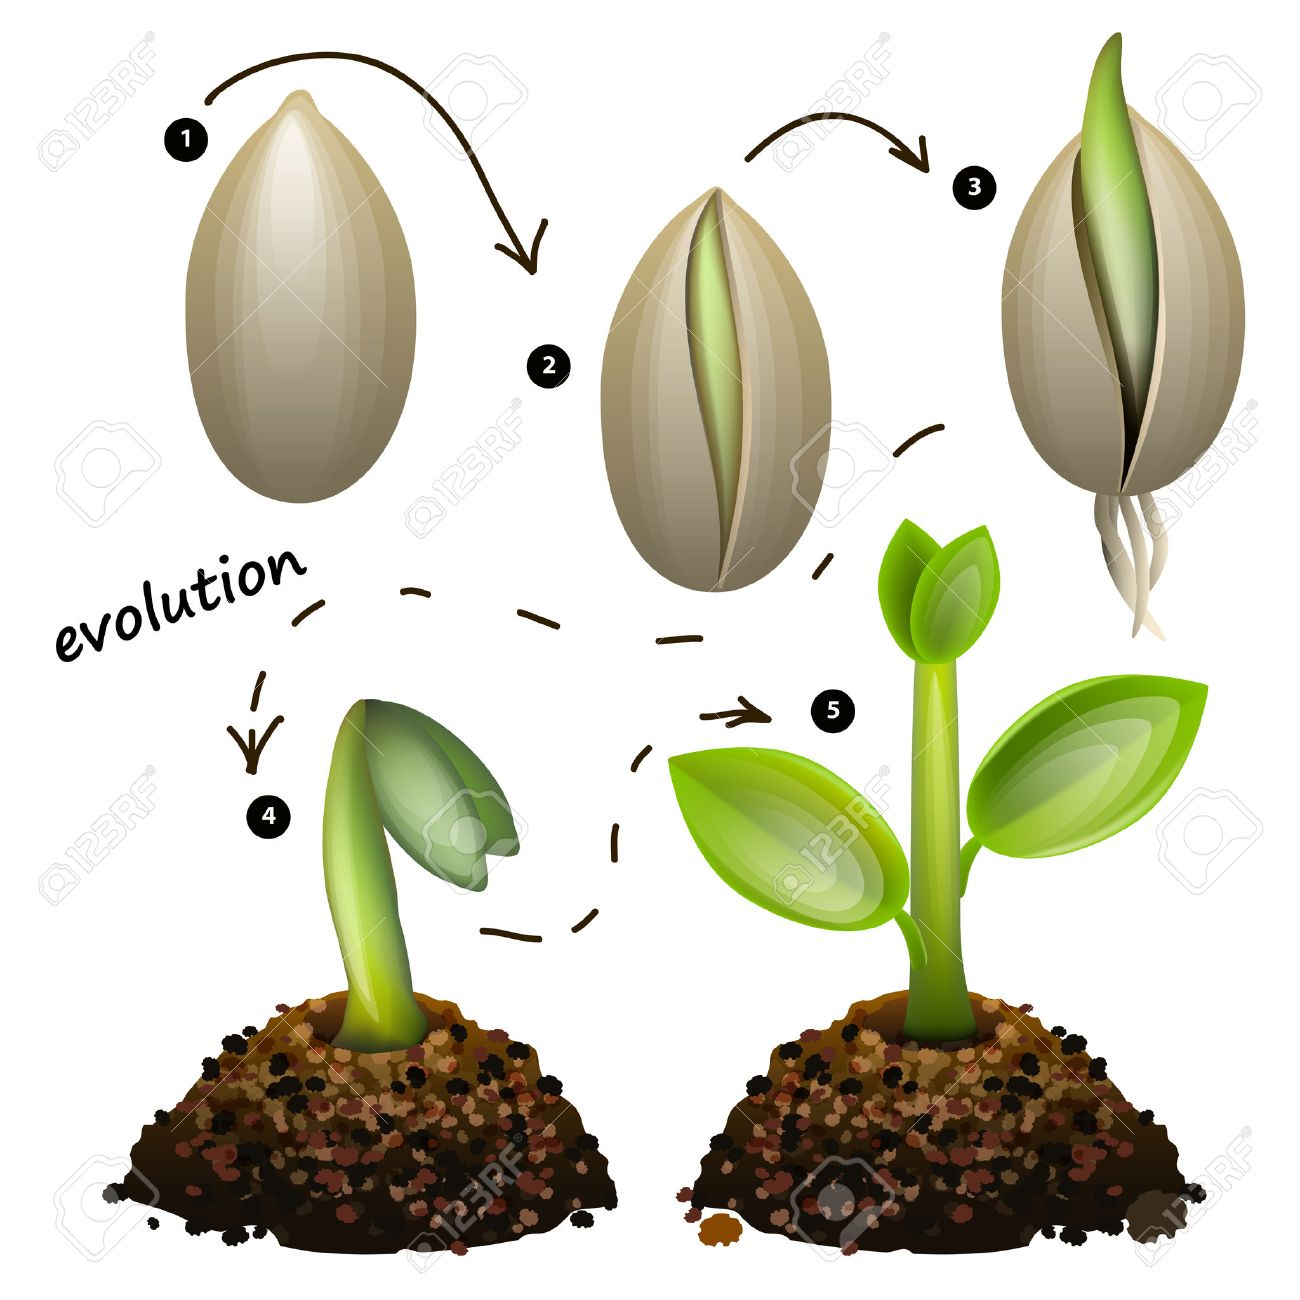 35,550 Evolution Stock Vector Illustration And Royalty Free ...